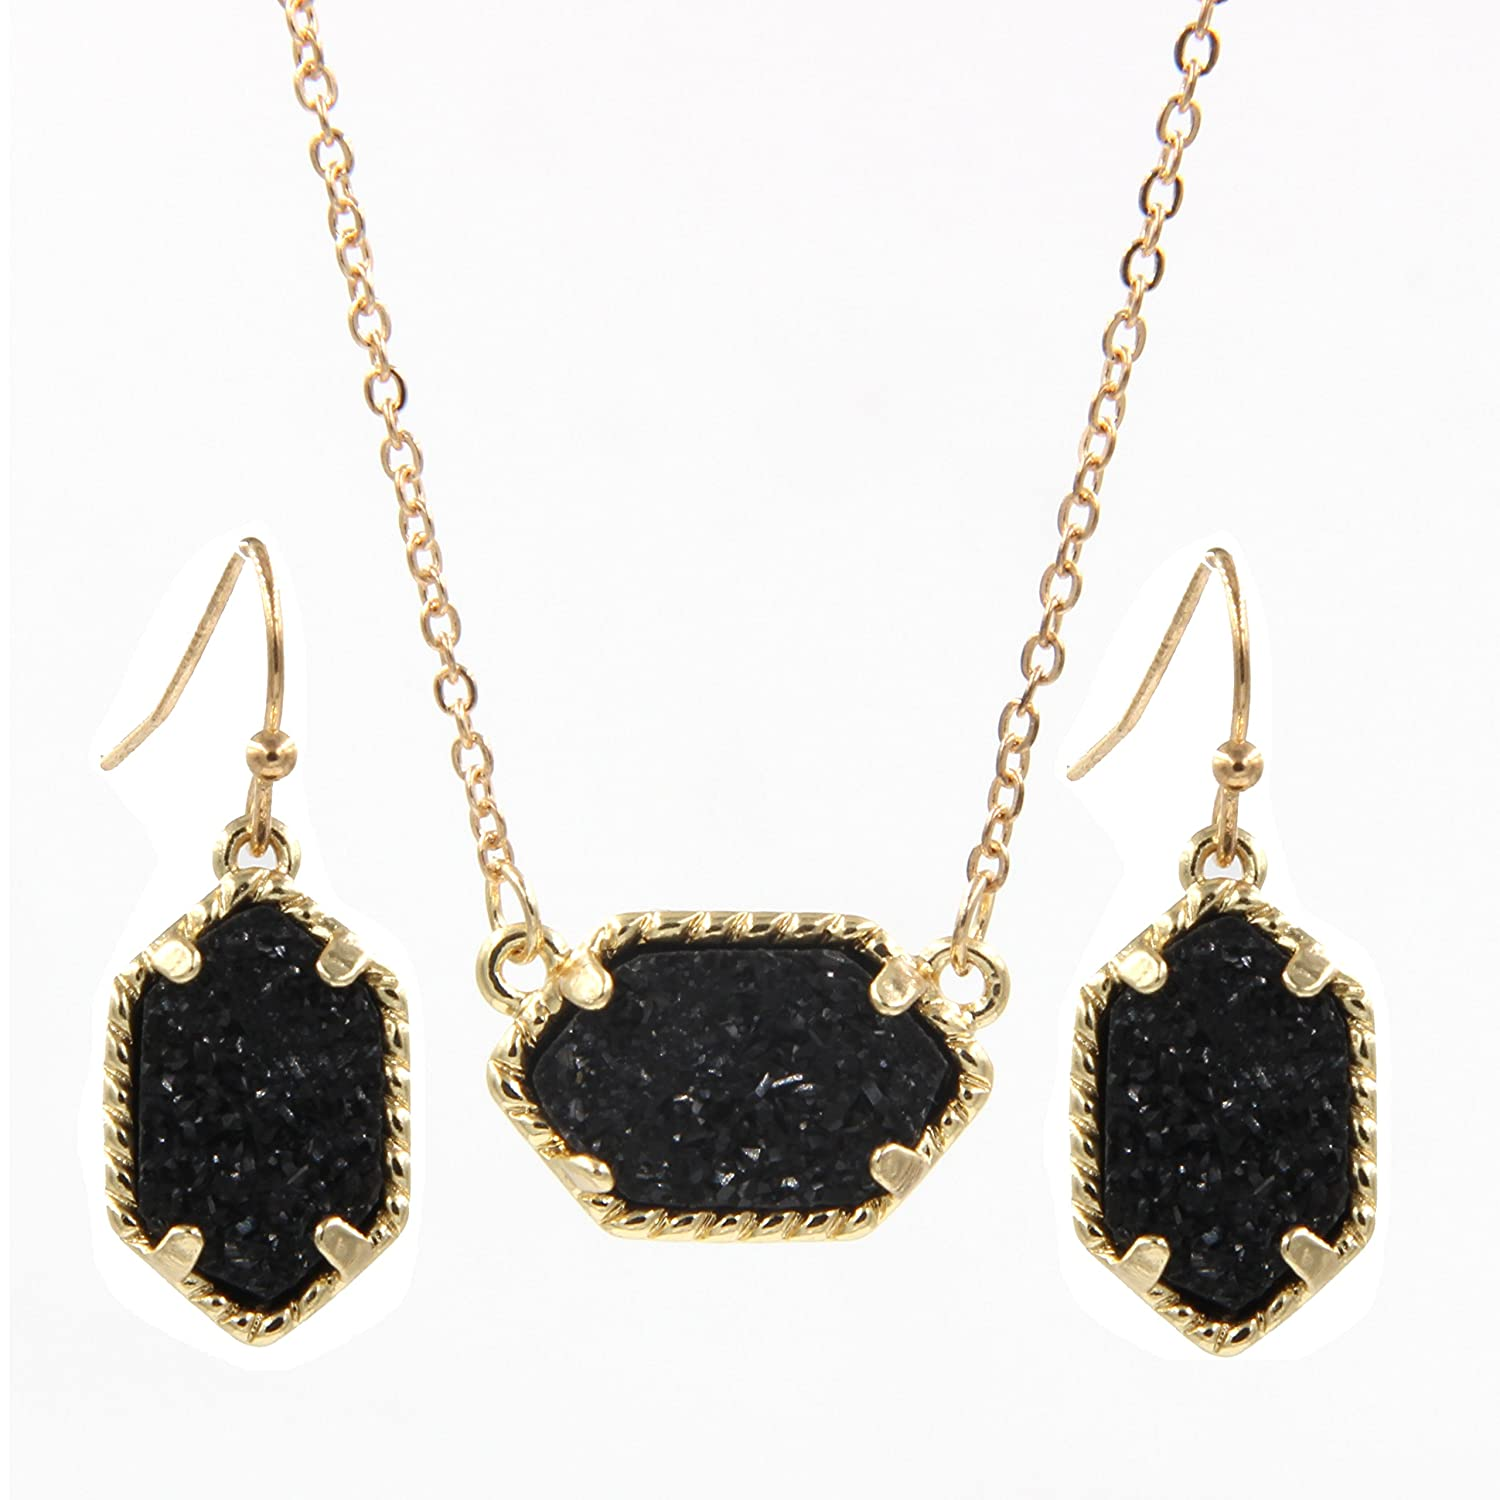 Fashion Jewelry Druzy Necklace Iridescent Green Square Druzy Pendant And Crystal Earrings Set